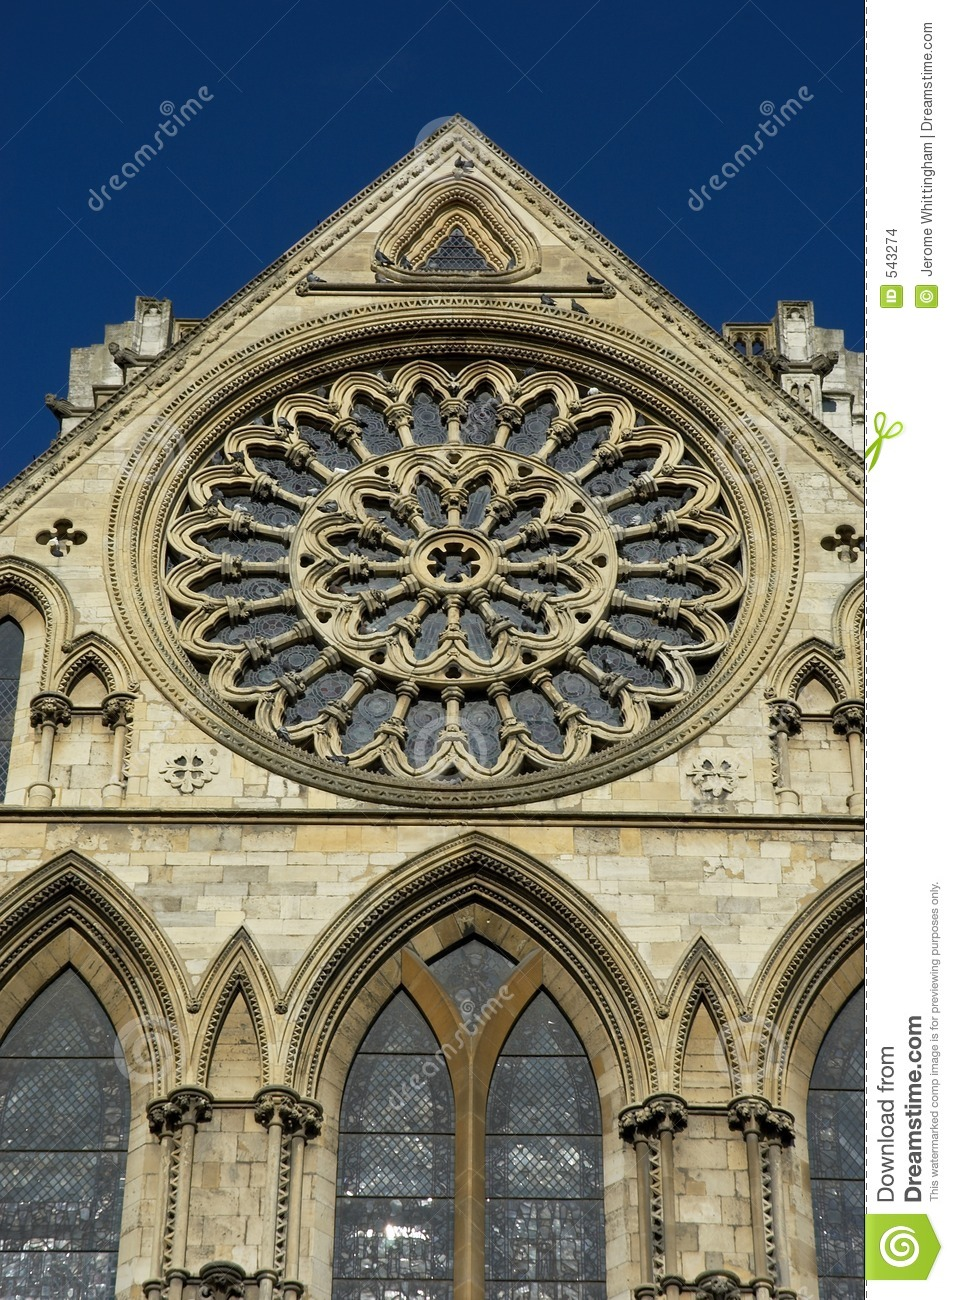 York minster rose window stock images image 543274 for Rose window york minster